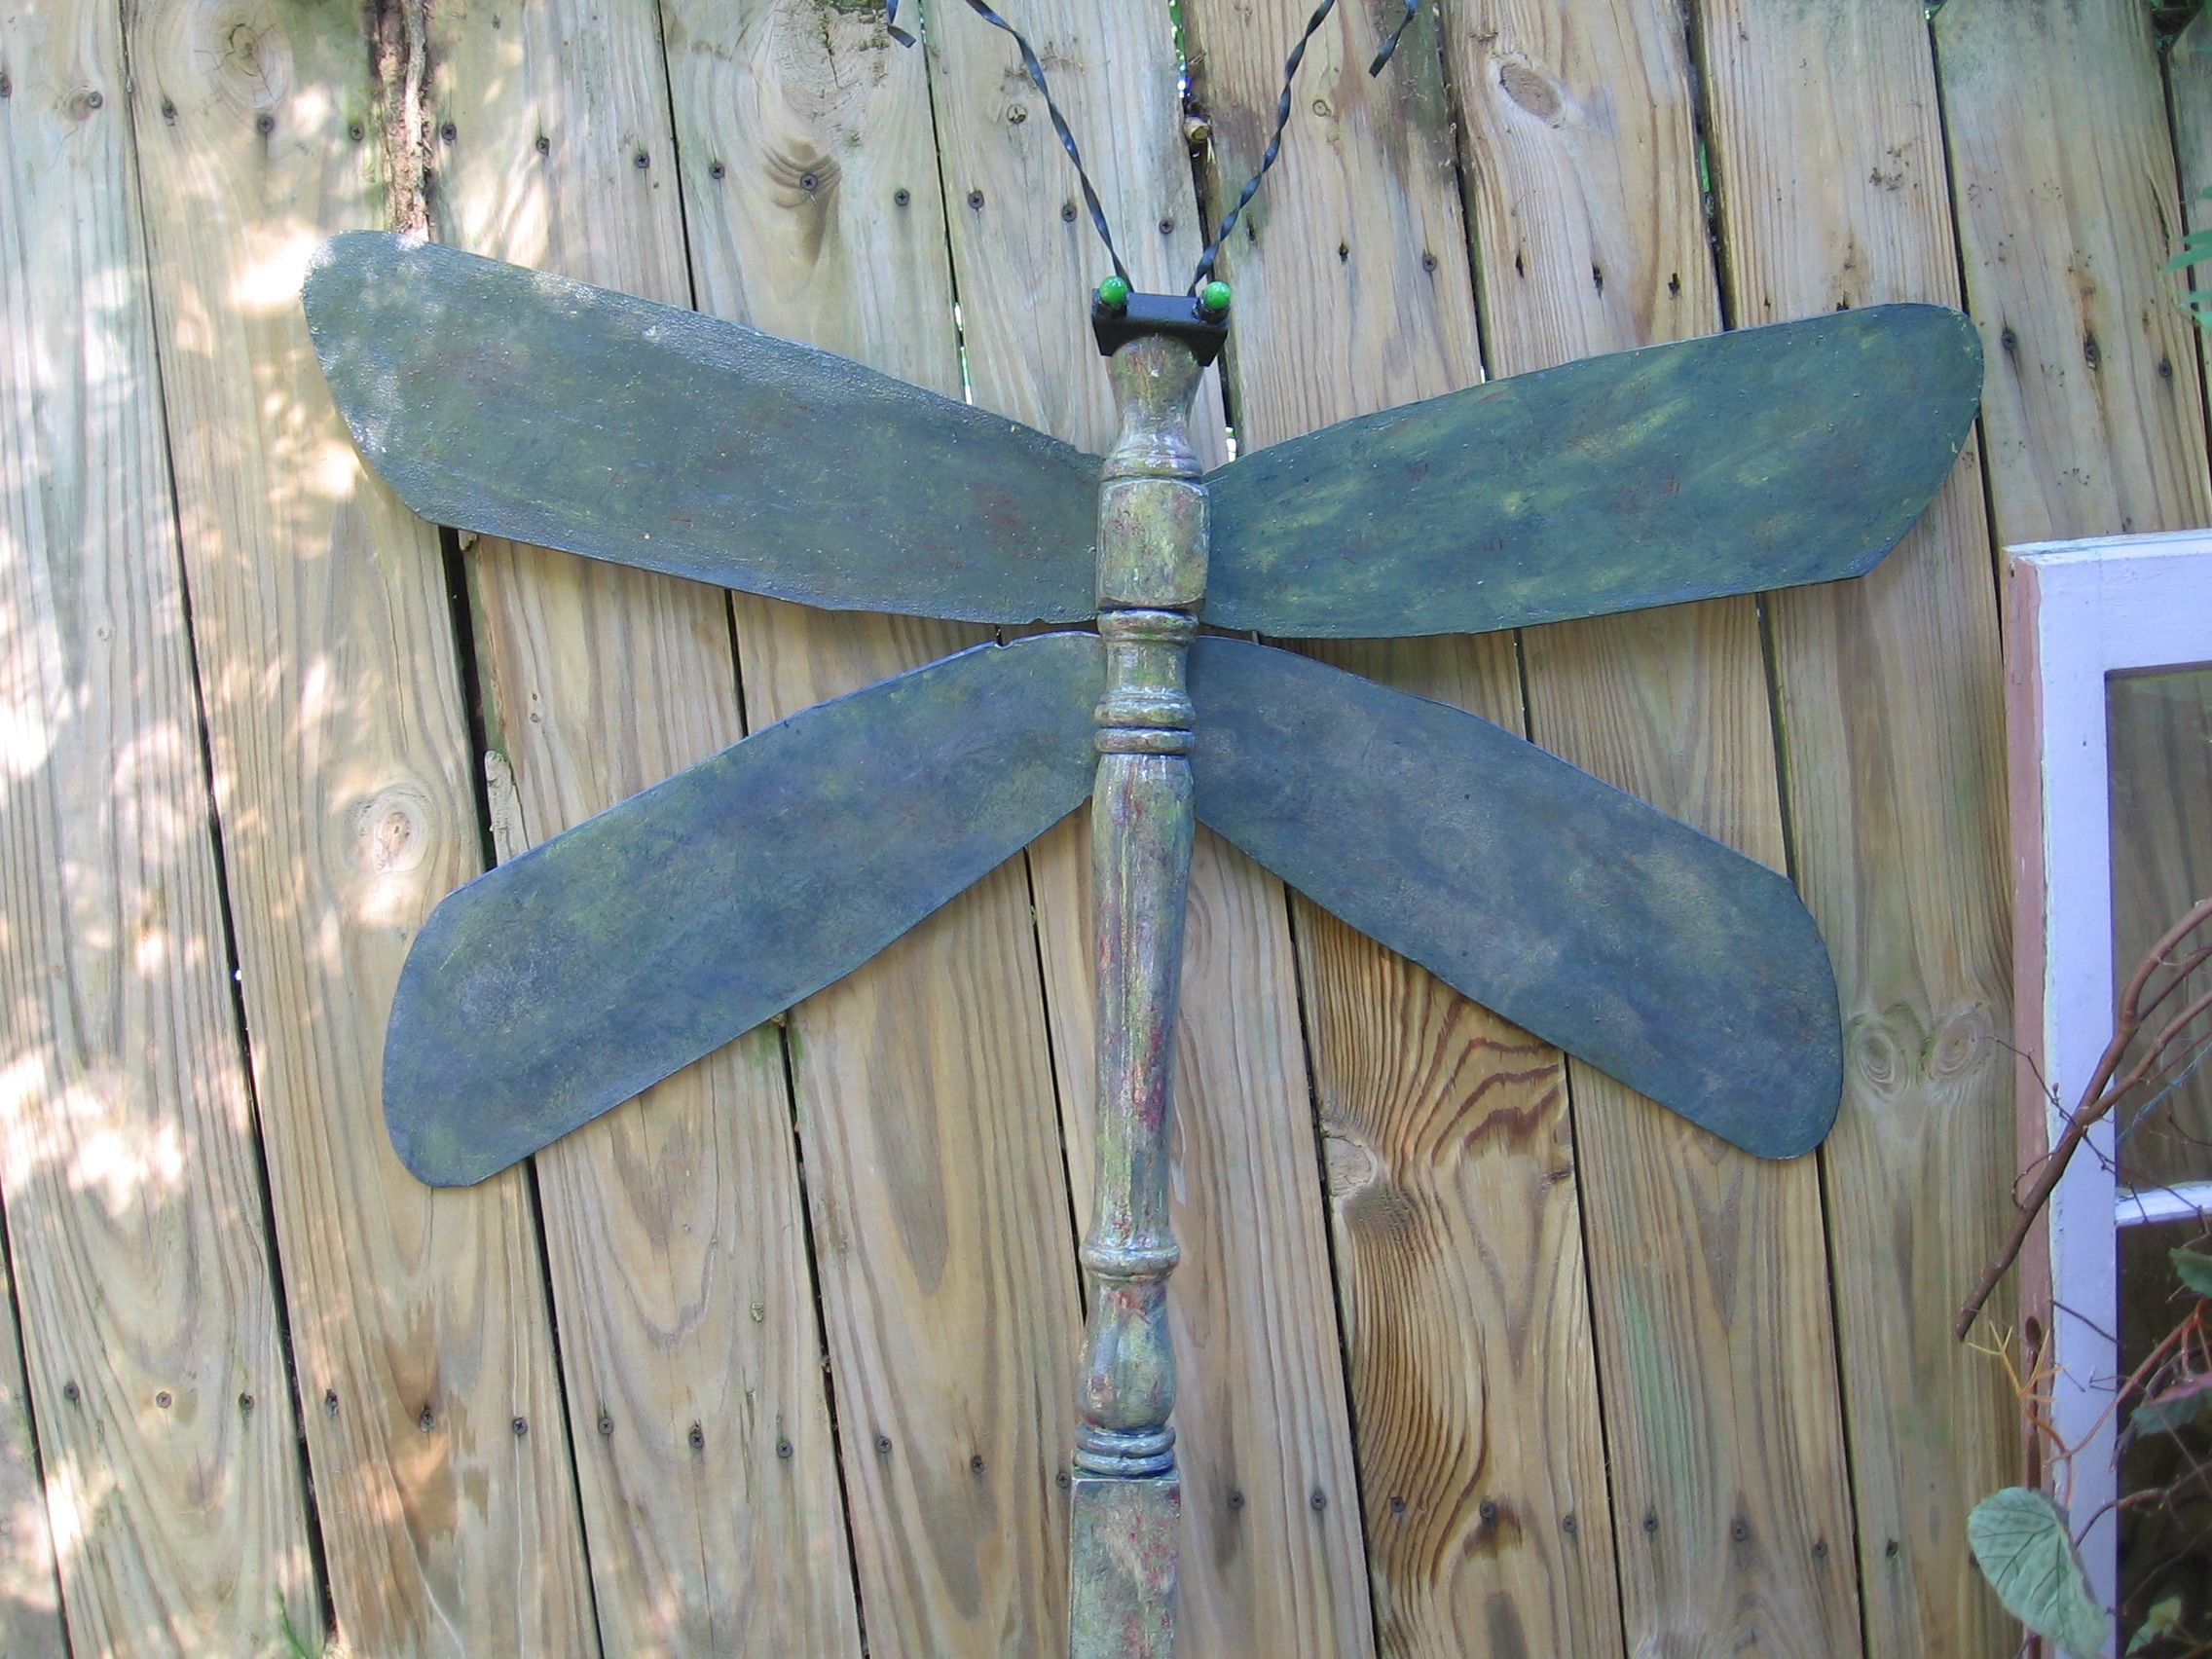 Dragonfly Made From Ceiling Fan Blades And Table Leg